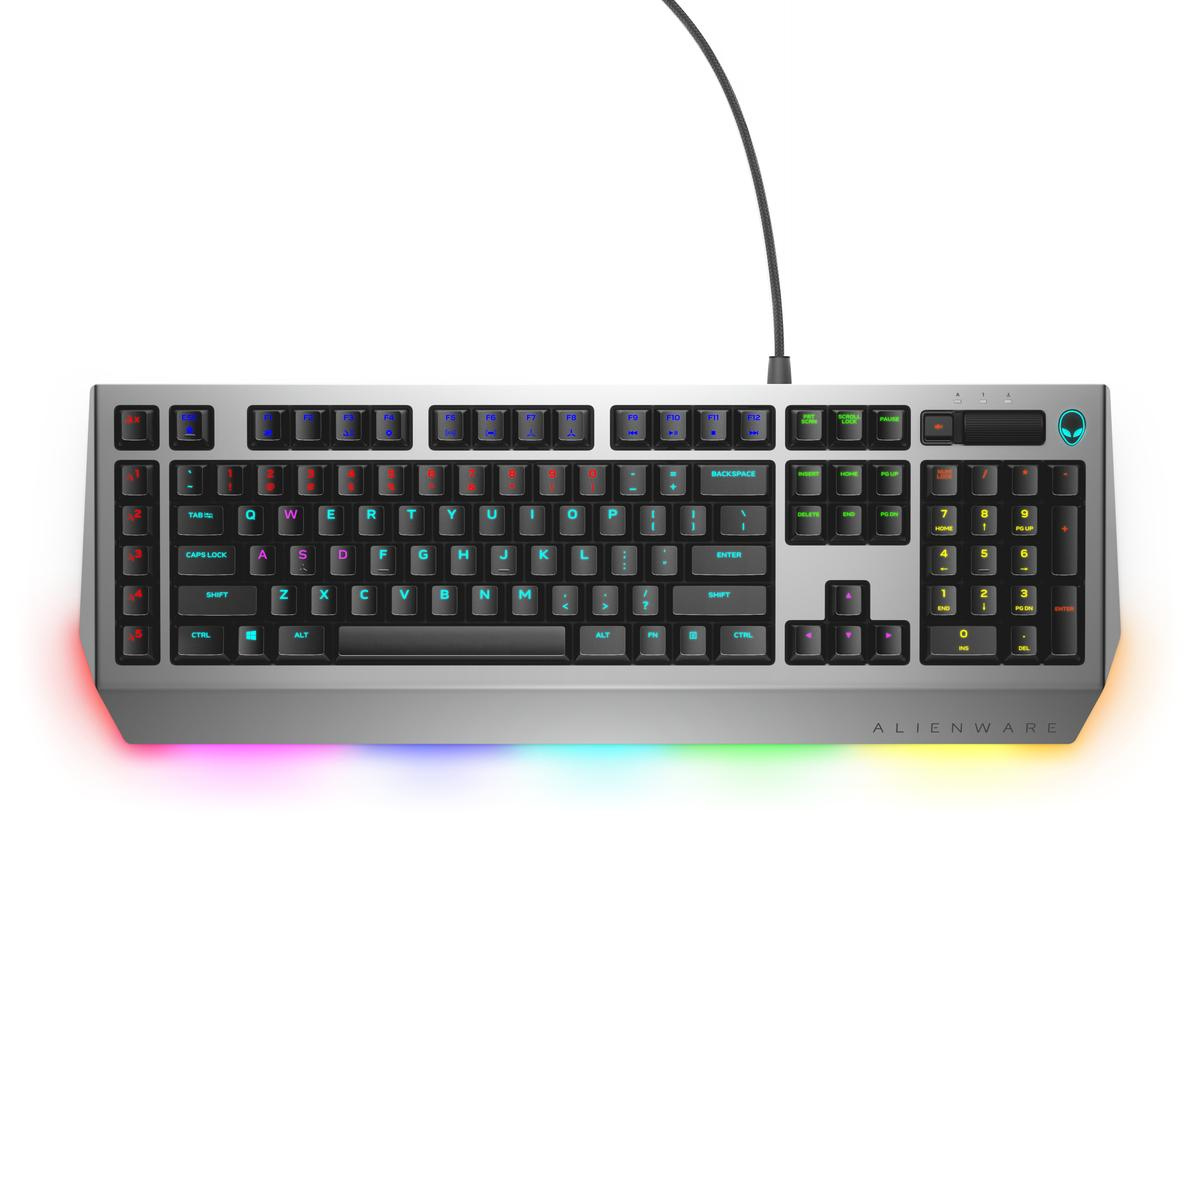 Alienware AW768 RGB Wired Gaming Keyboard